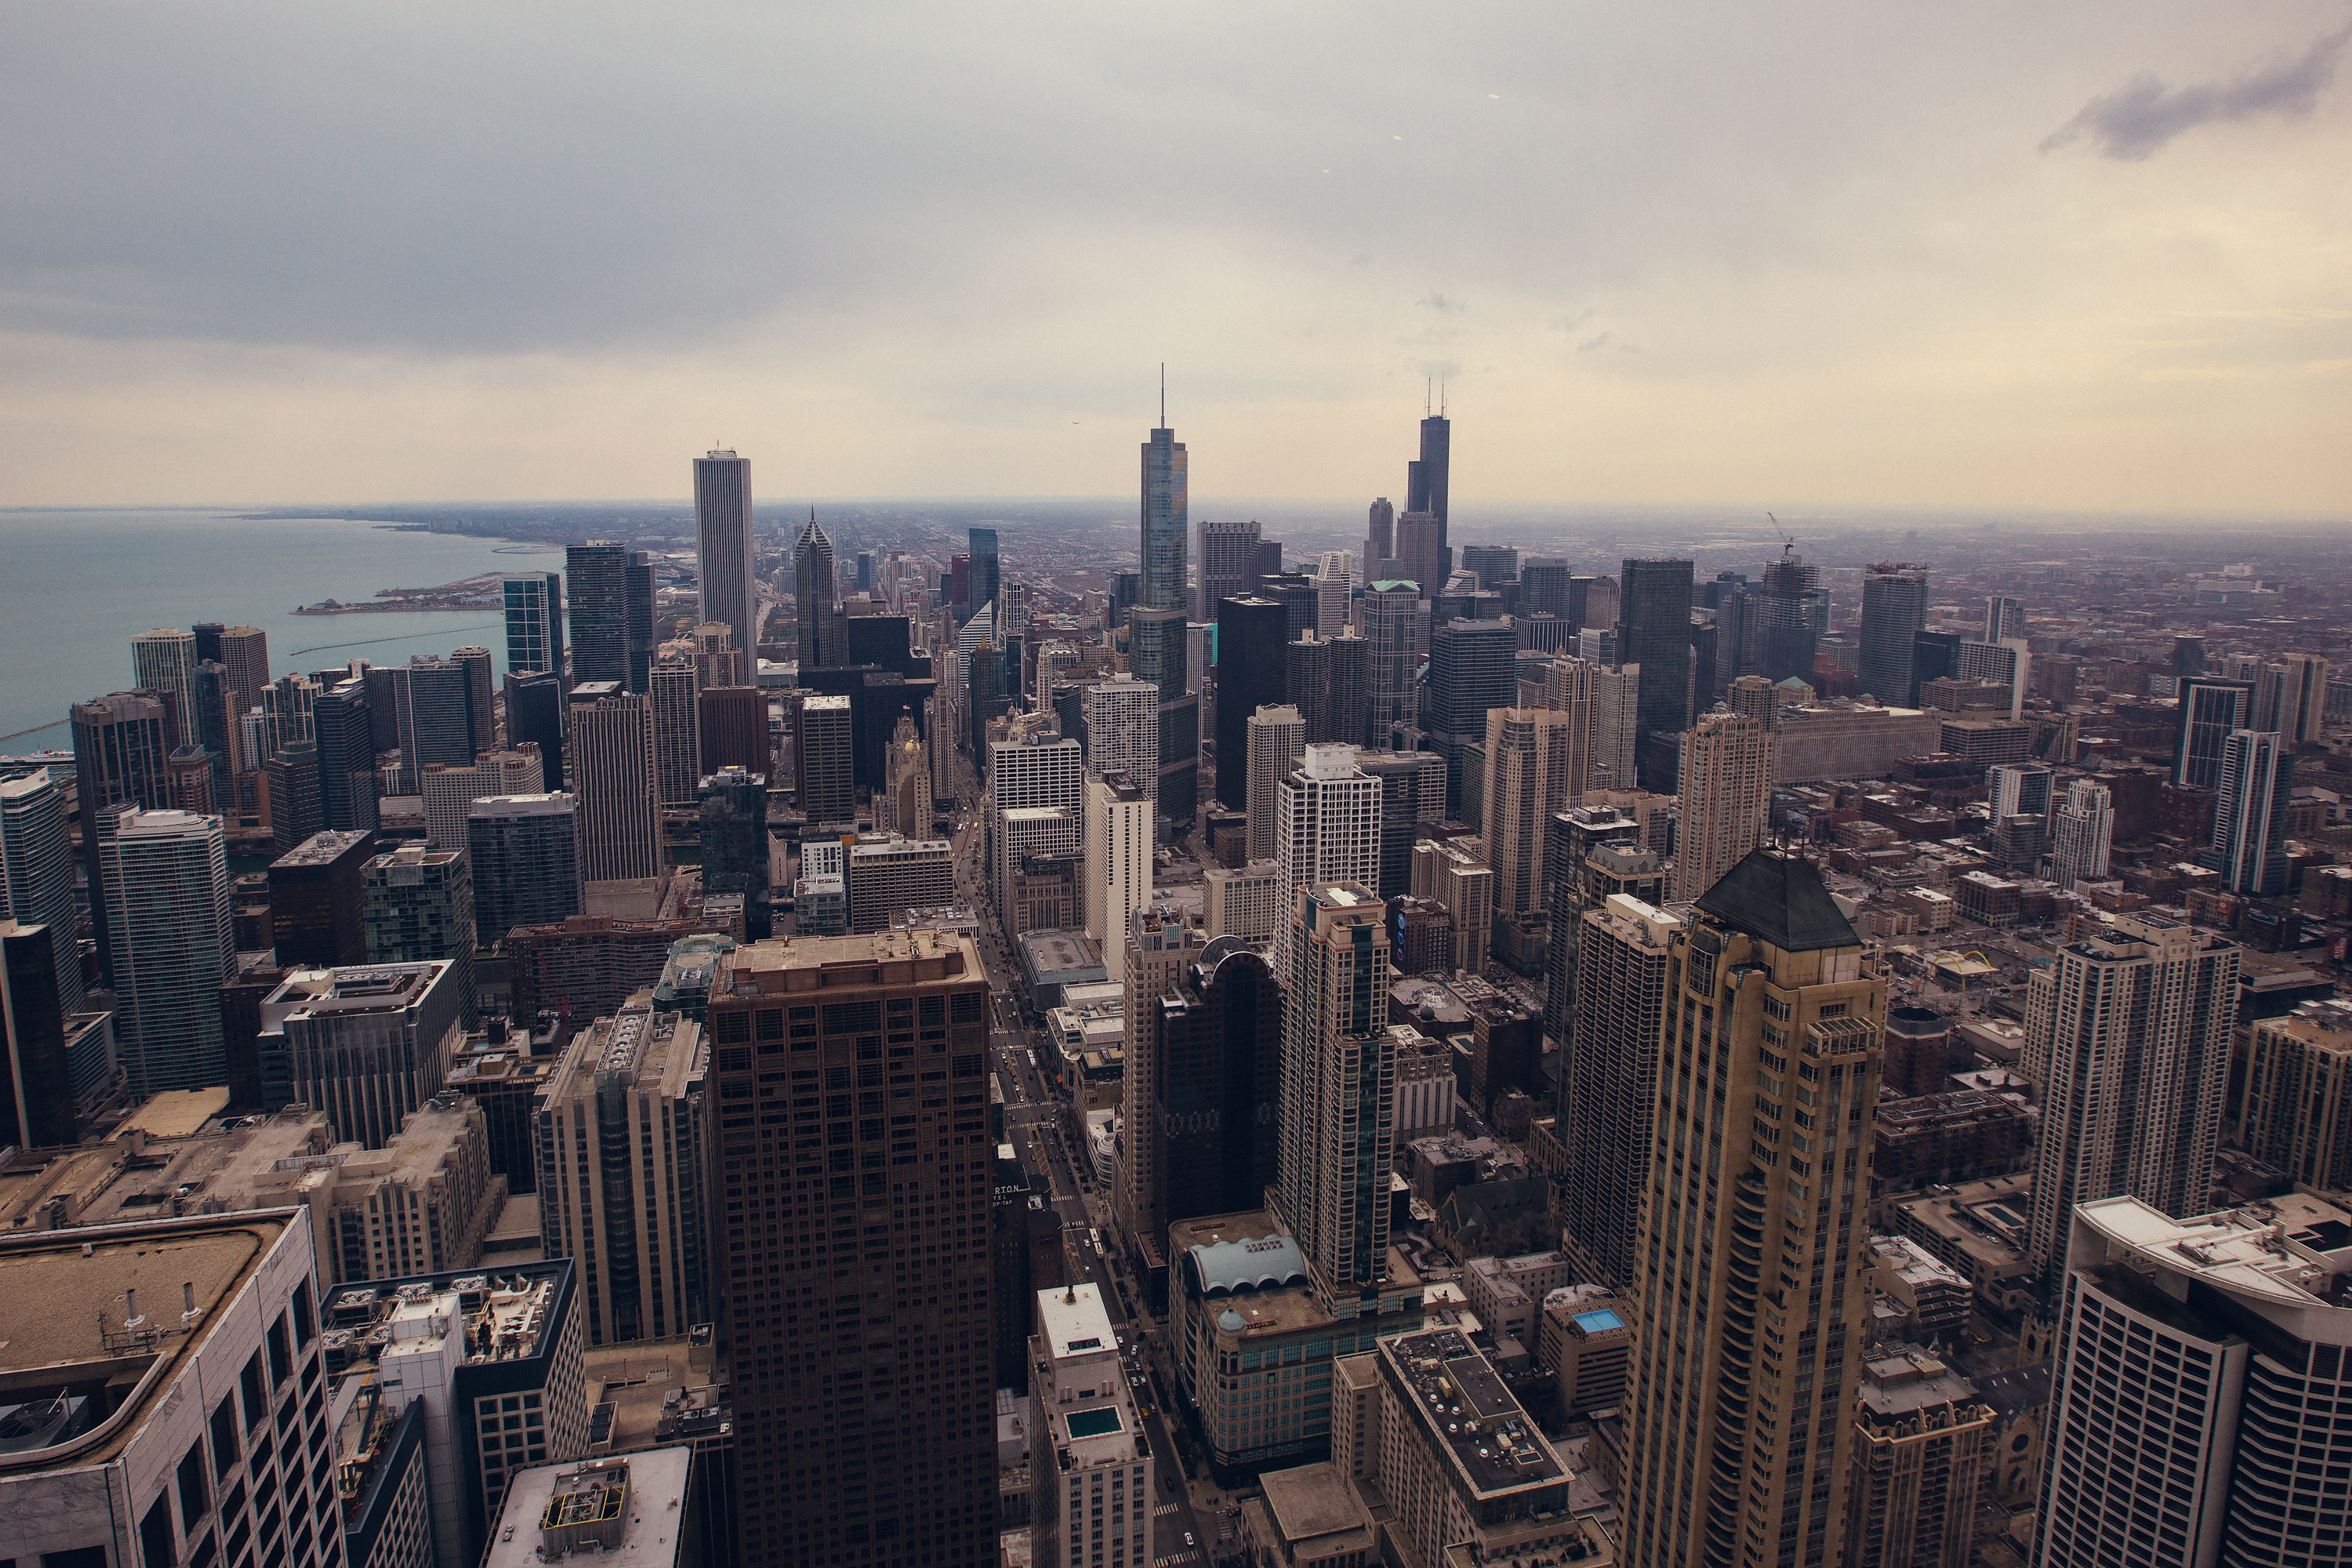 Chicago from the John Hancock Center